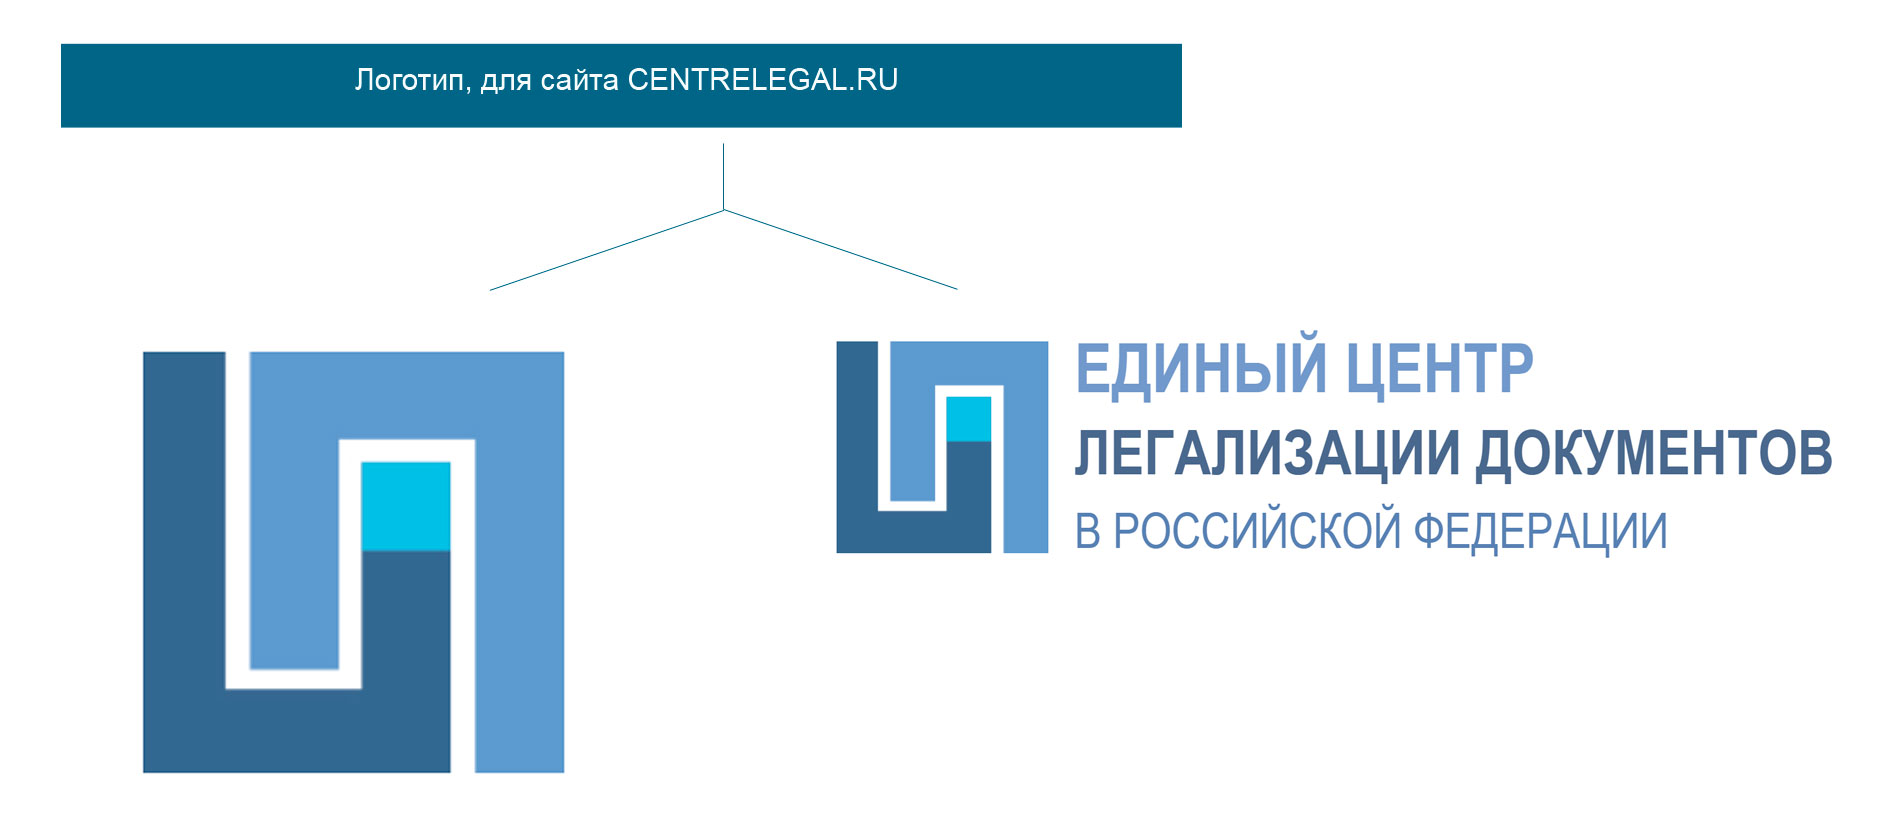 Создание сайта для центра легализации документов и проставления апостиля centrelegal.ru